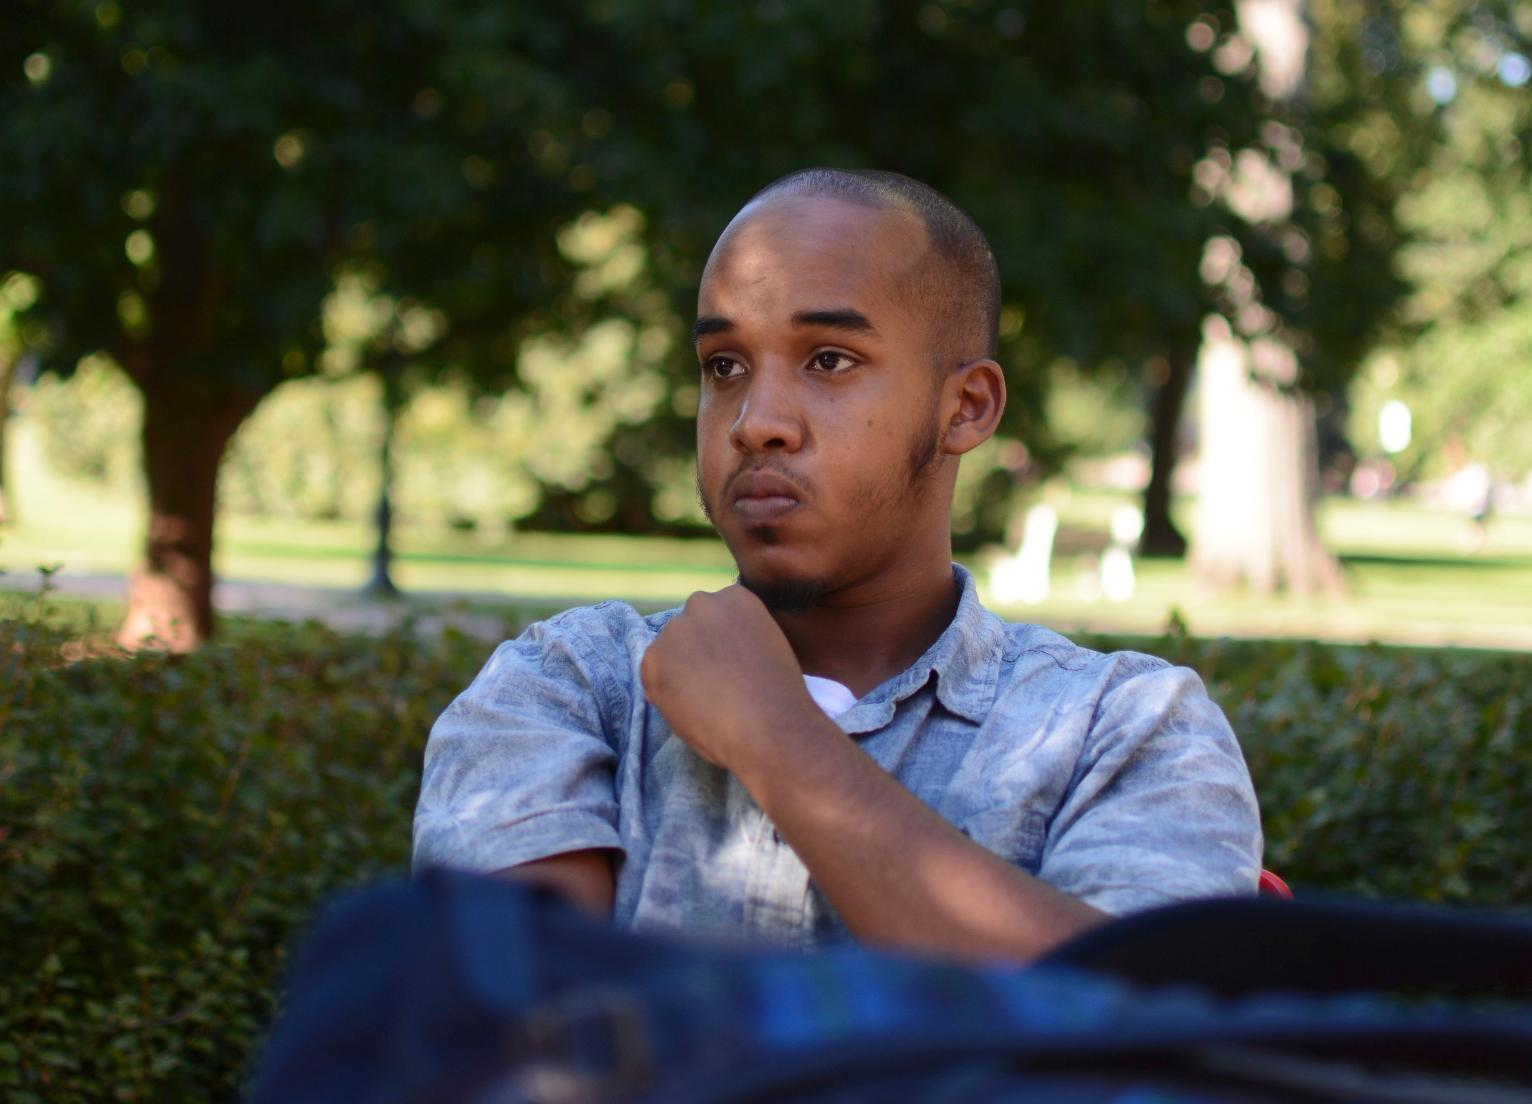 Terrorism suspected in car-and-knife attack at Ohio State U.